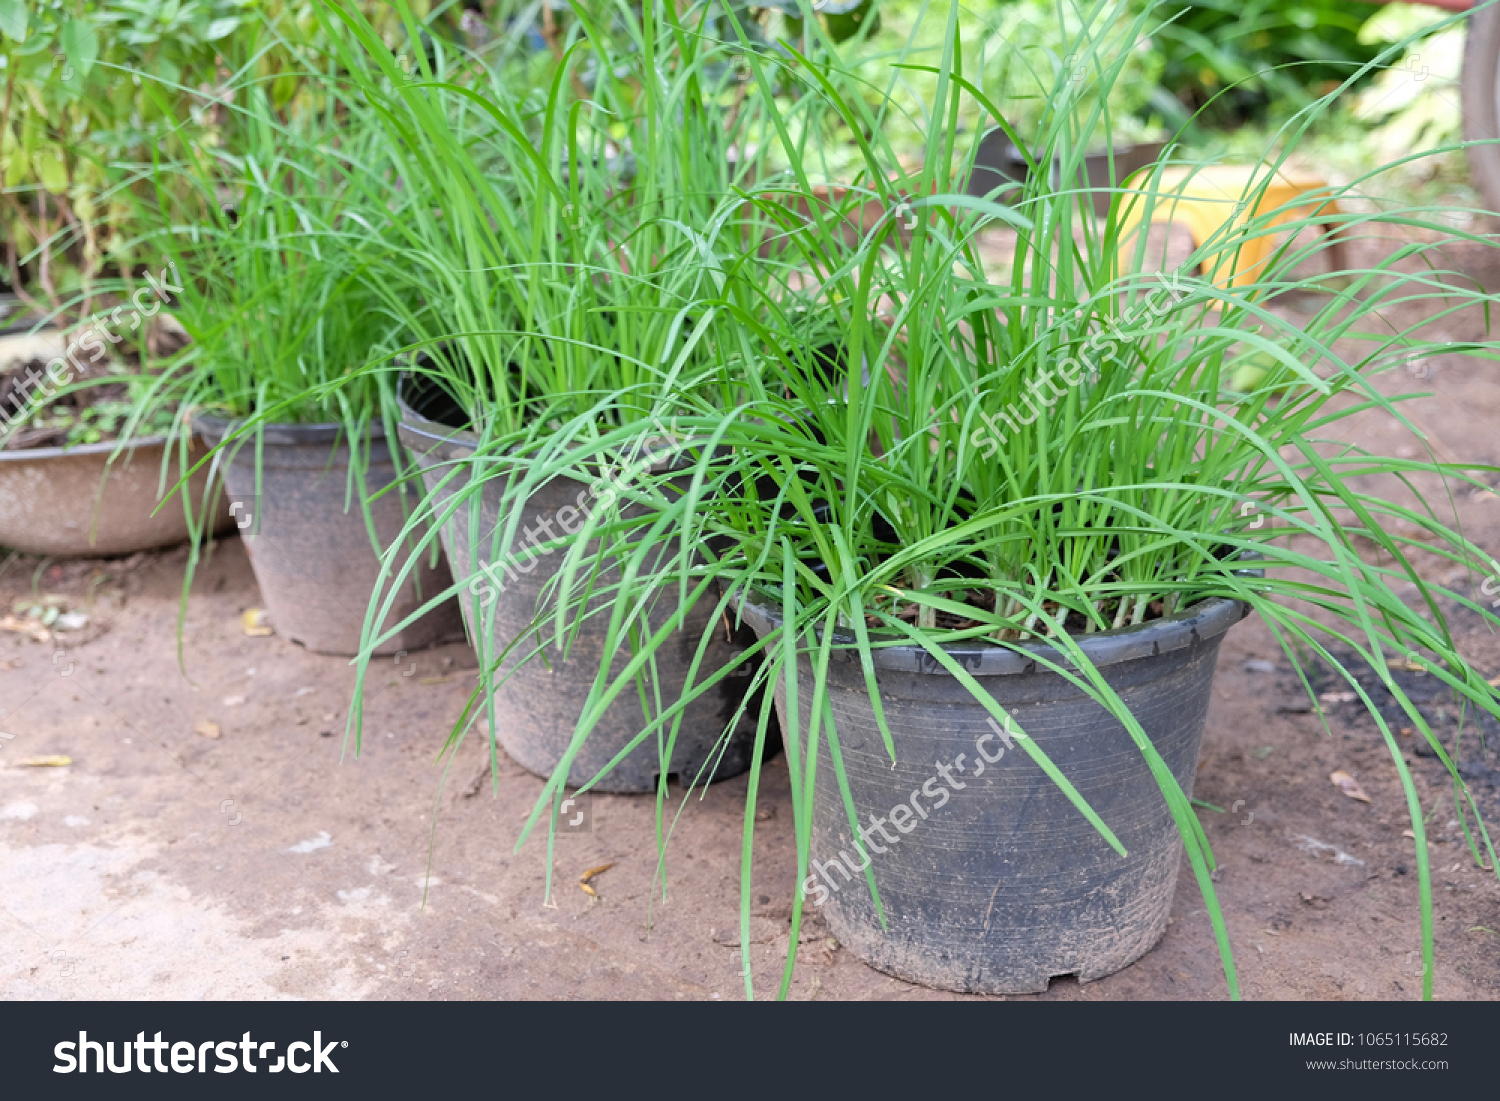 Image of: Chinese Chive Growing Pot Stock Photo Edit Now 1065115682